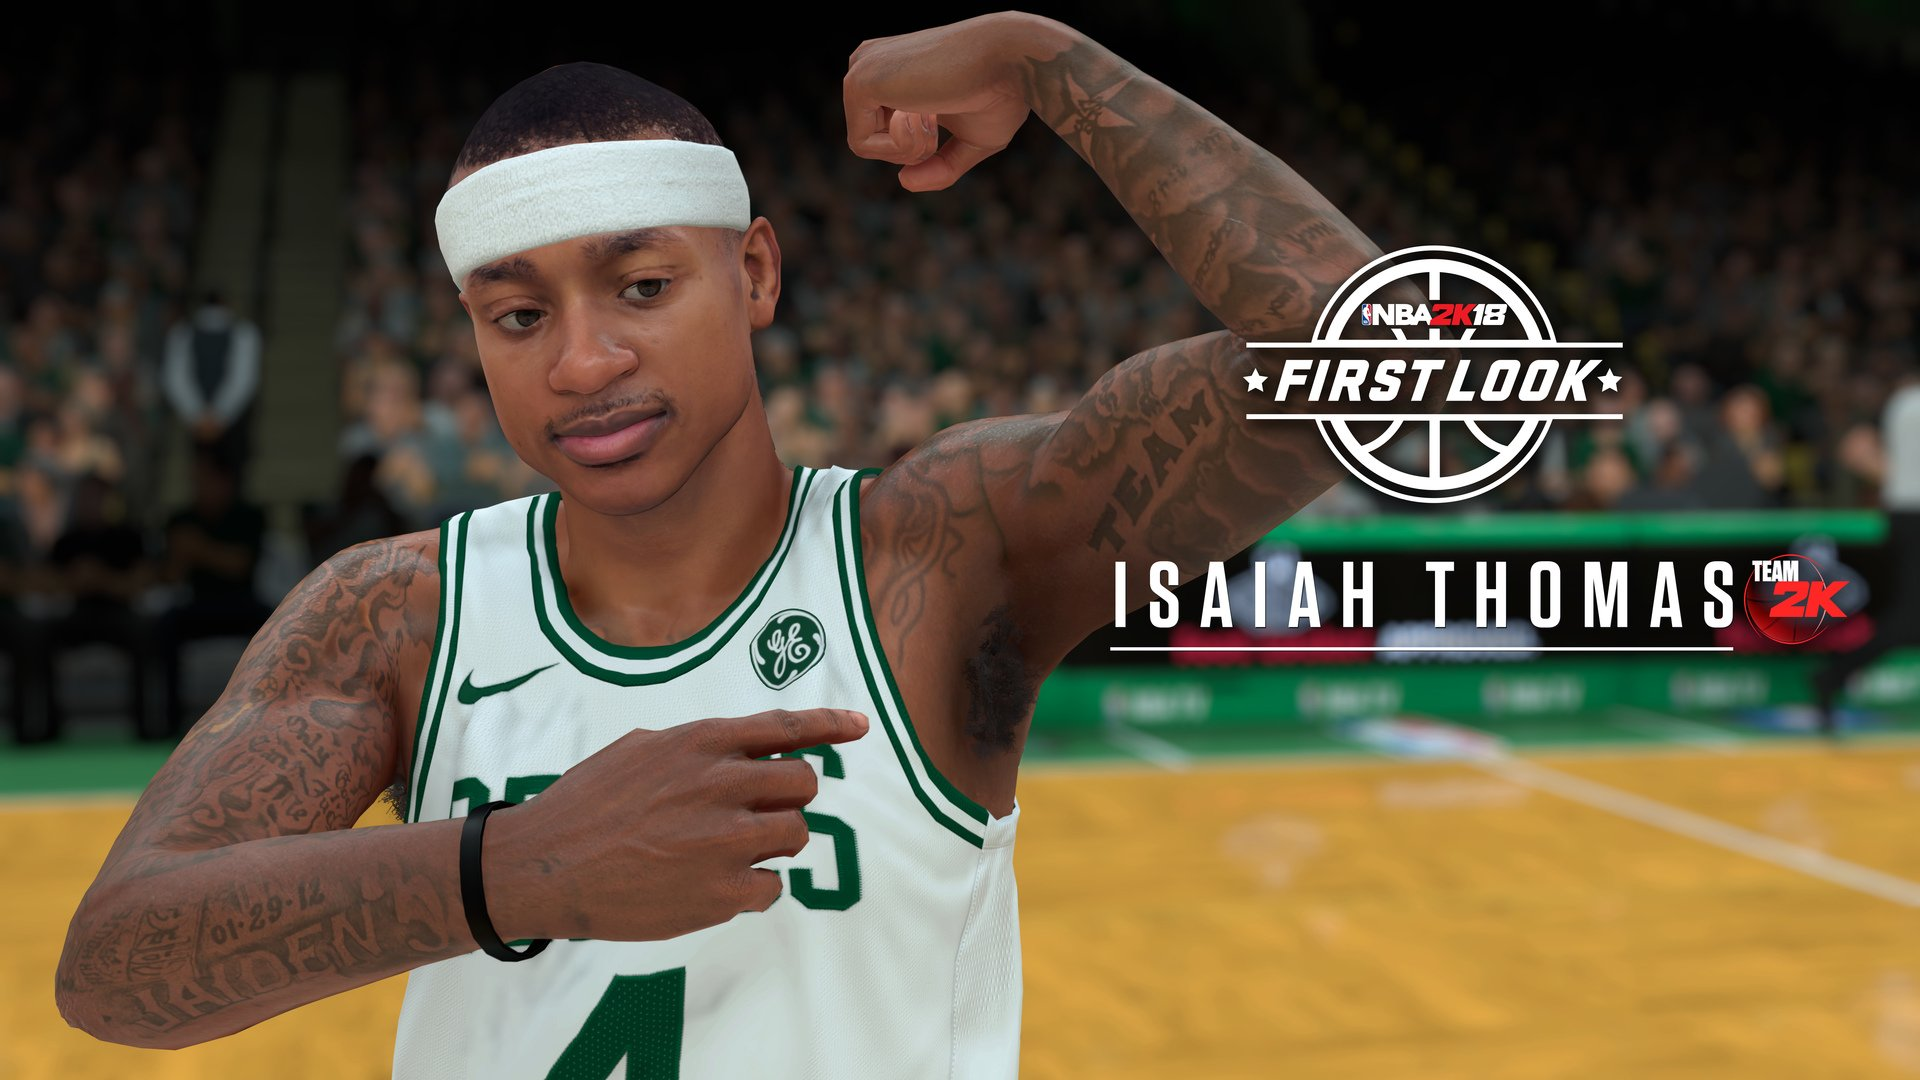 NBA 2K18 Screencaps Give Peek at In-Game Ads, Swoosh